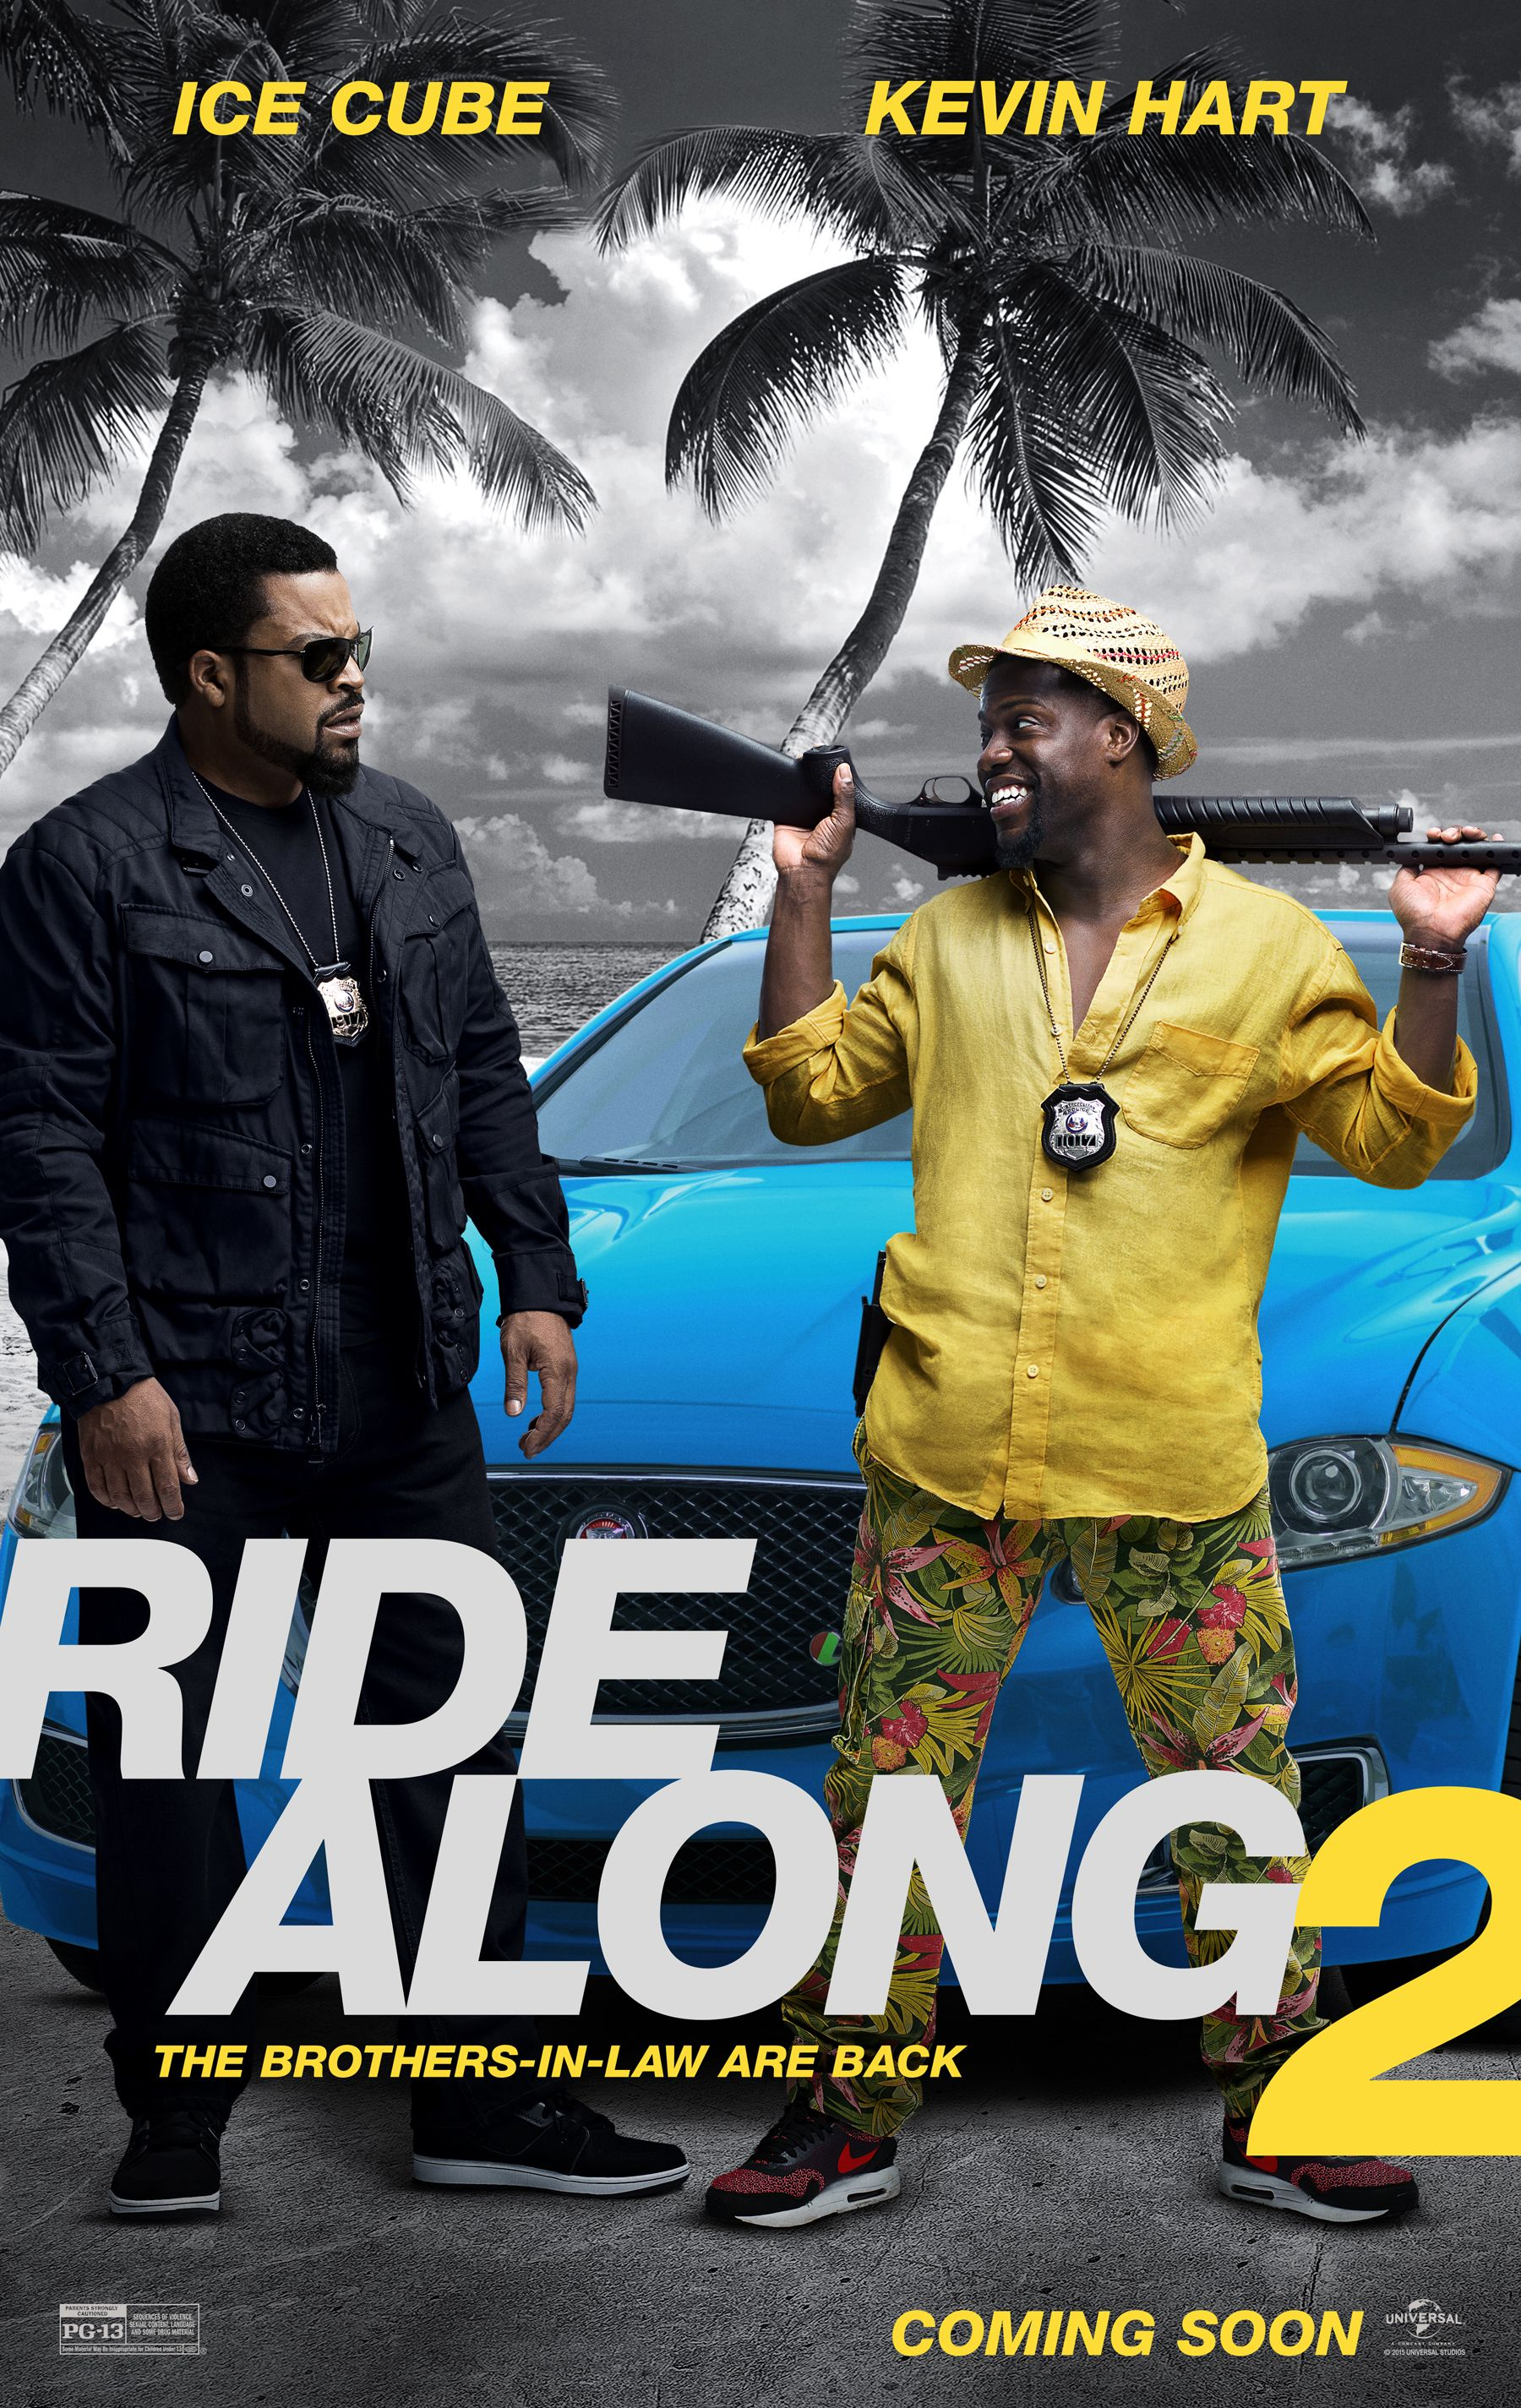 All Movie Posters And Prints For Ride Along 2 Joblo Posters Peliculas Online Gratis Peliculas Divertidas Ride Along 2